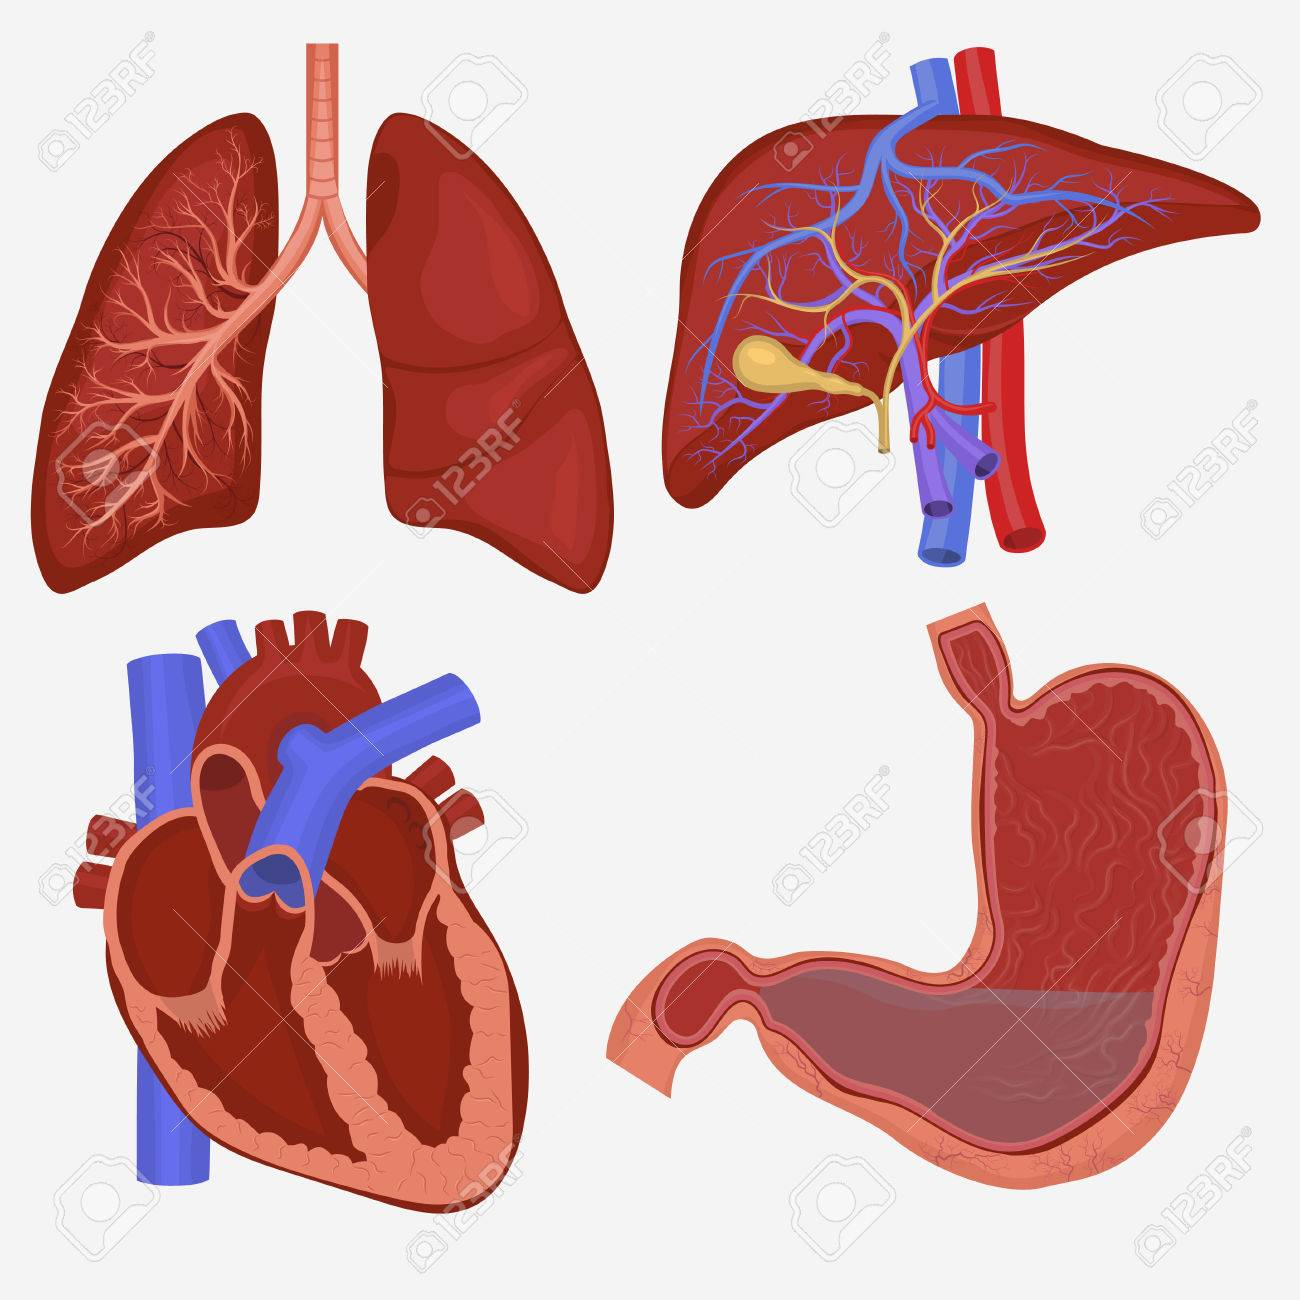 Human internal organs set lungs liver stomach and heart anatomy human internal organs set lungs liver stomach and heart anatomy vector illustration ccuart Image collections